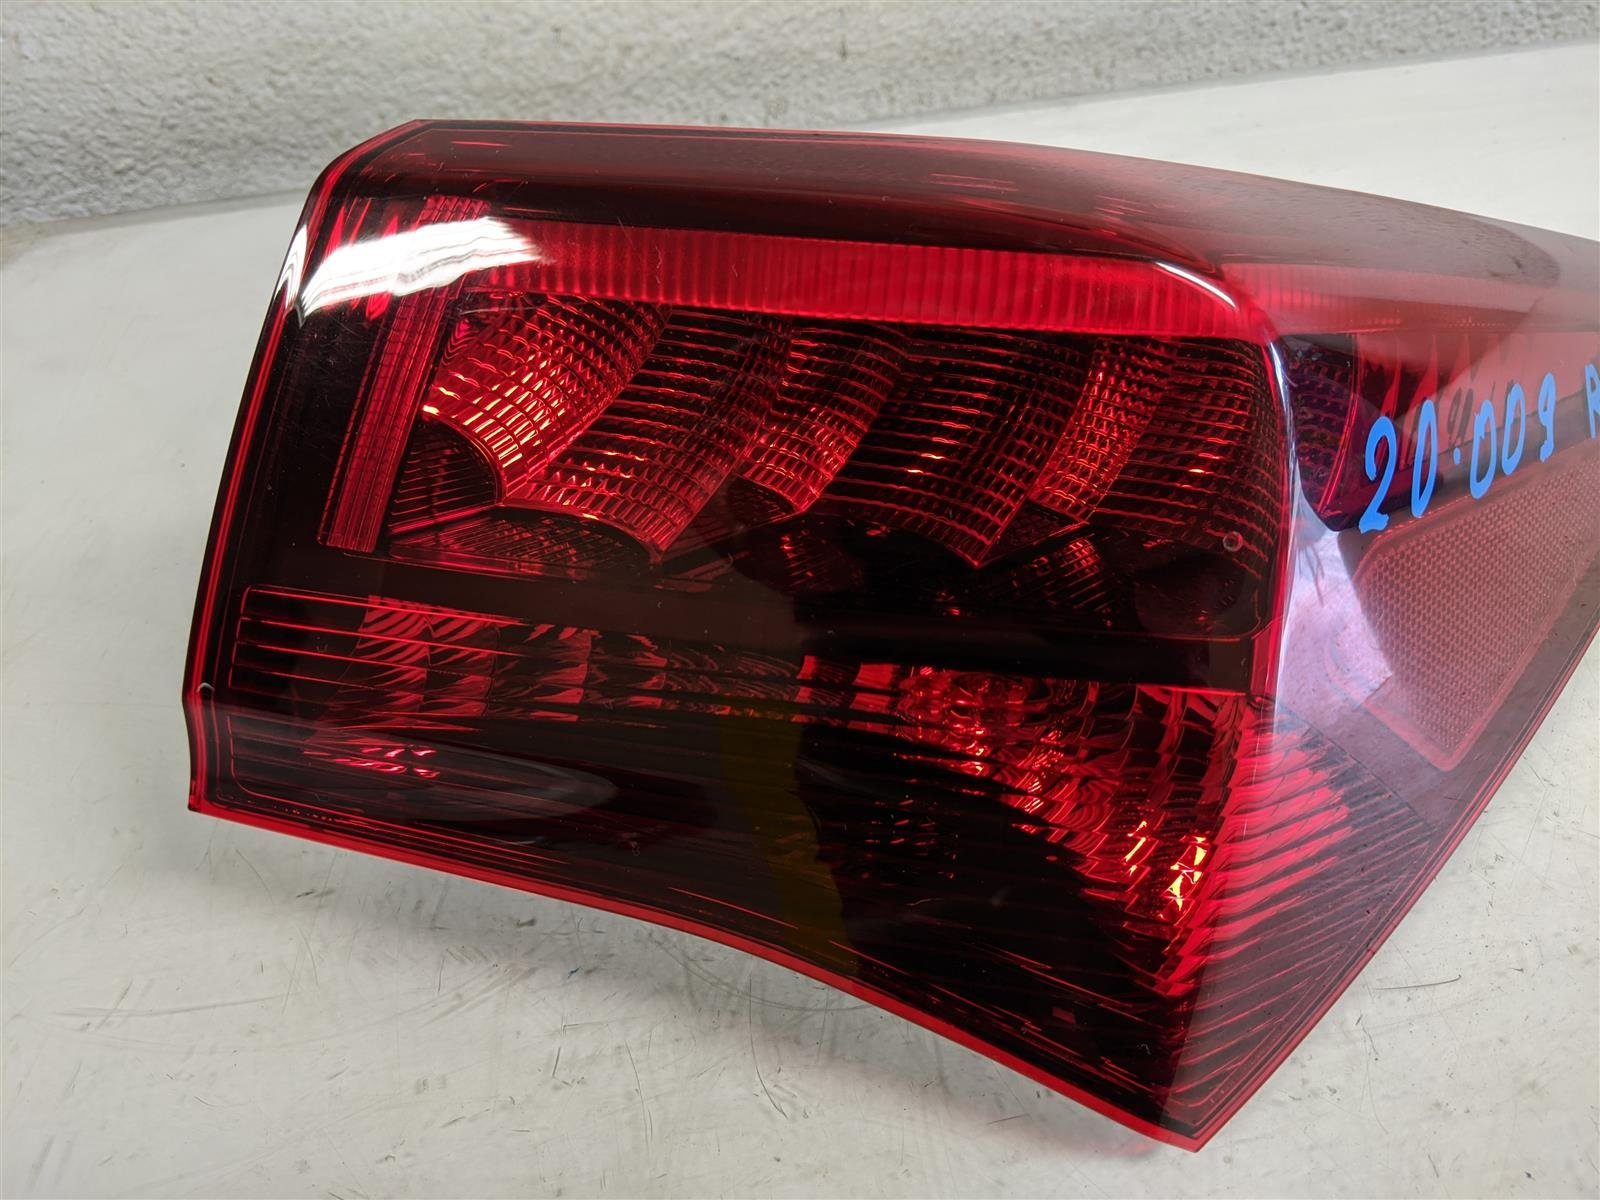 2017 Acura TLX Passenger Tail Light Lamp Quarter Mounted Replacement